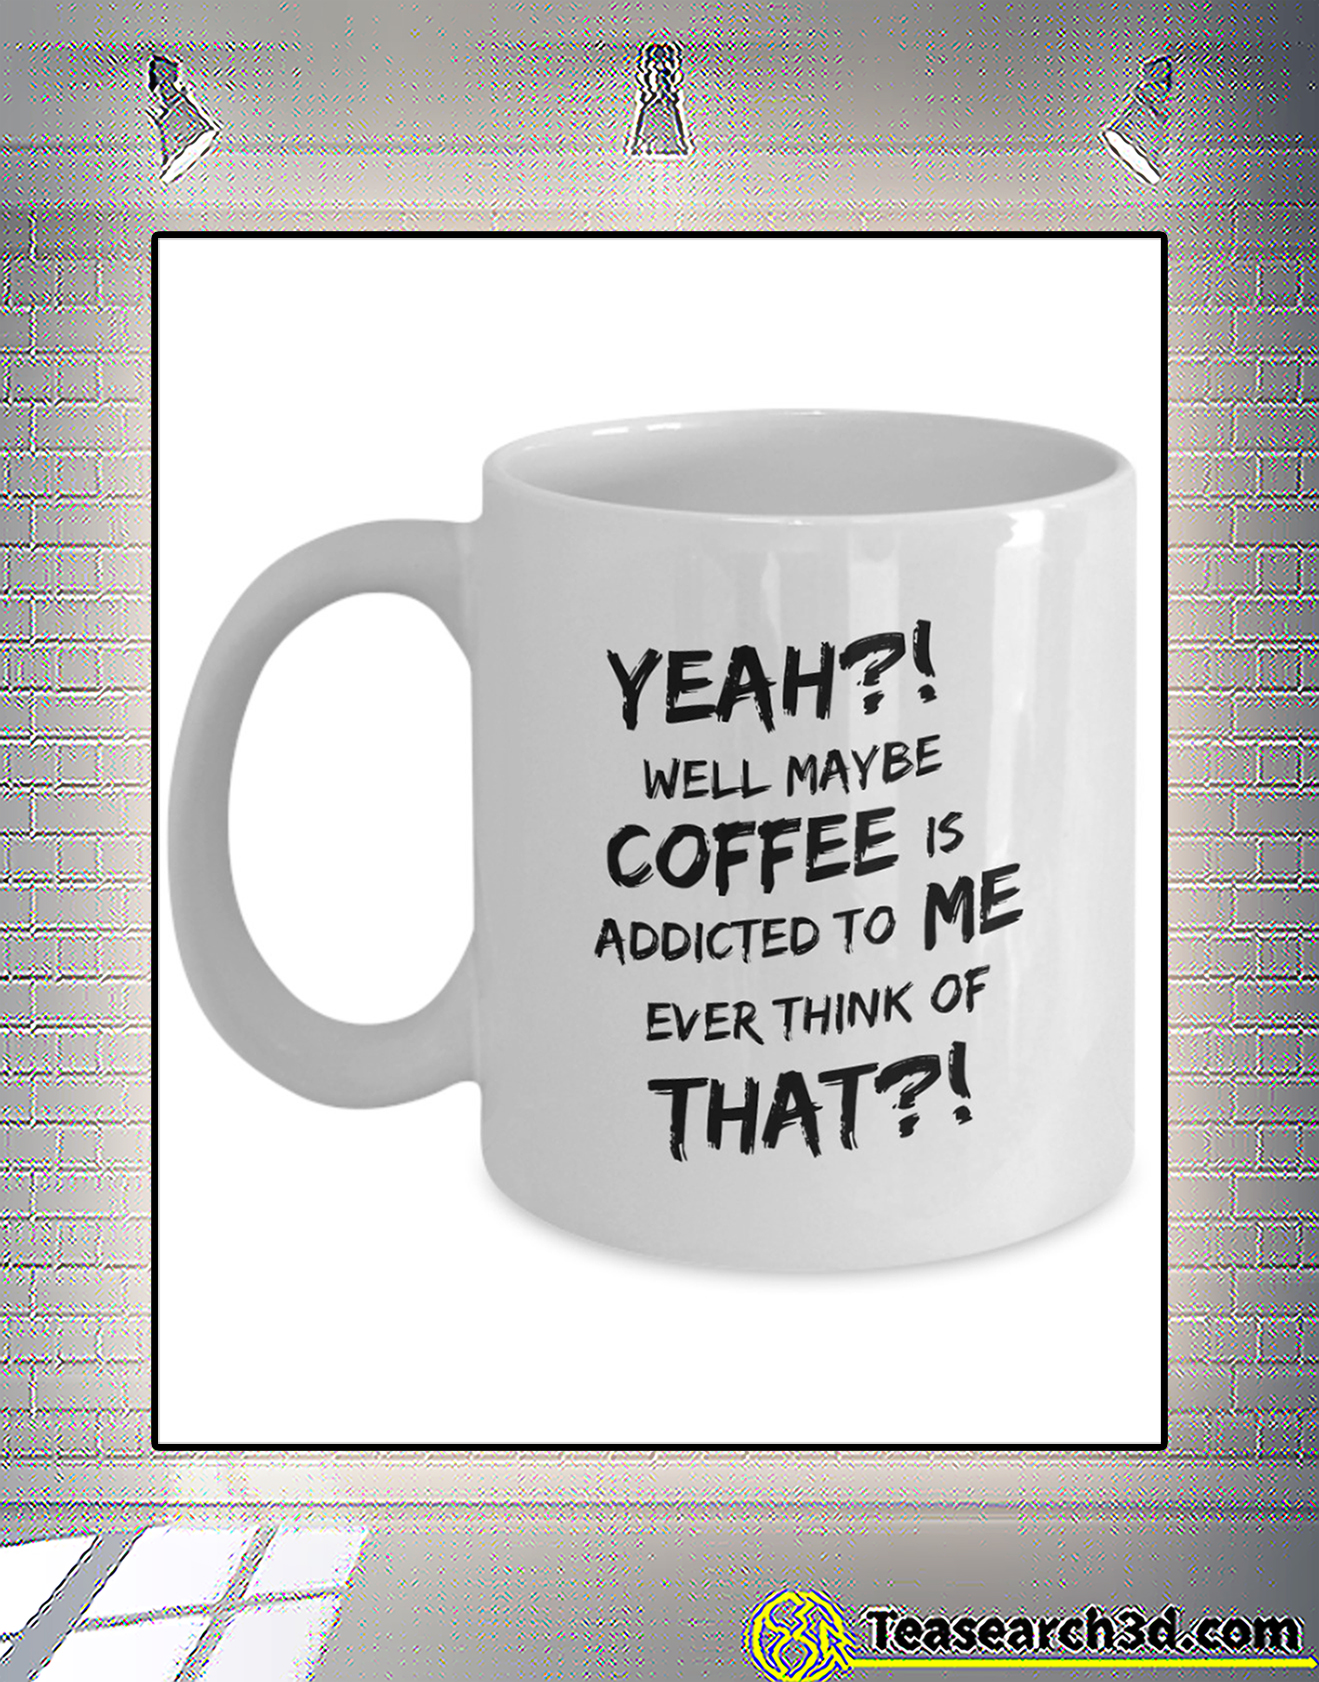 Yeah well maybe coffee is addicted to me ever think of that mug 2